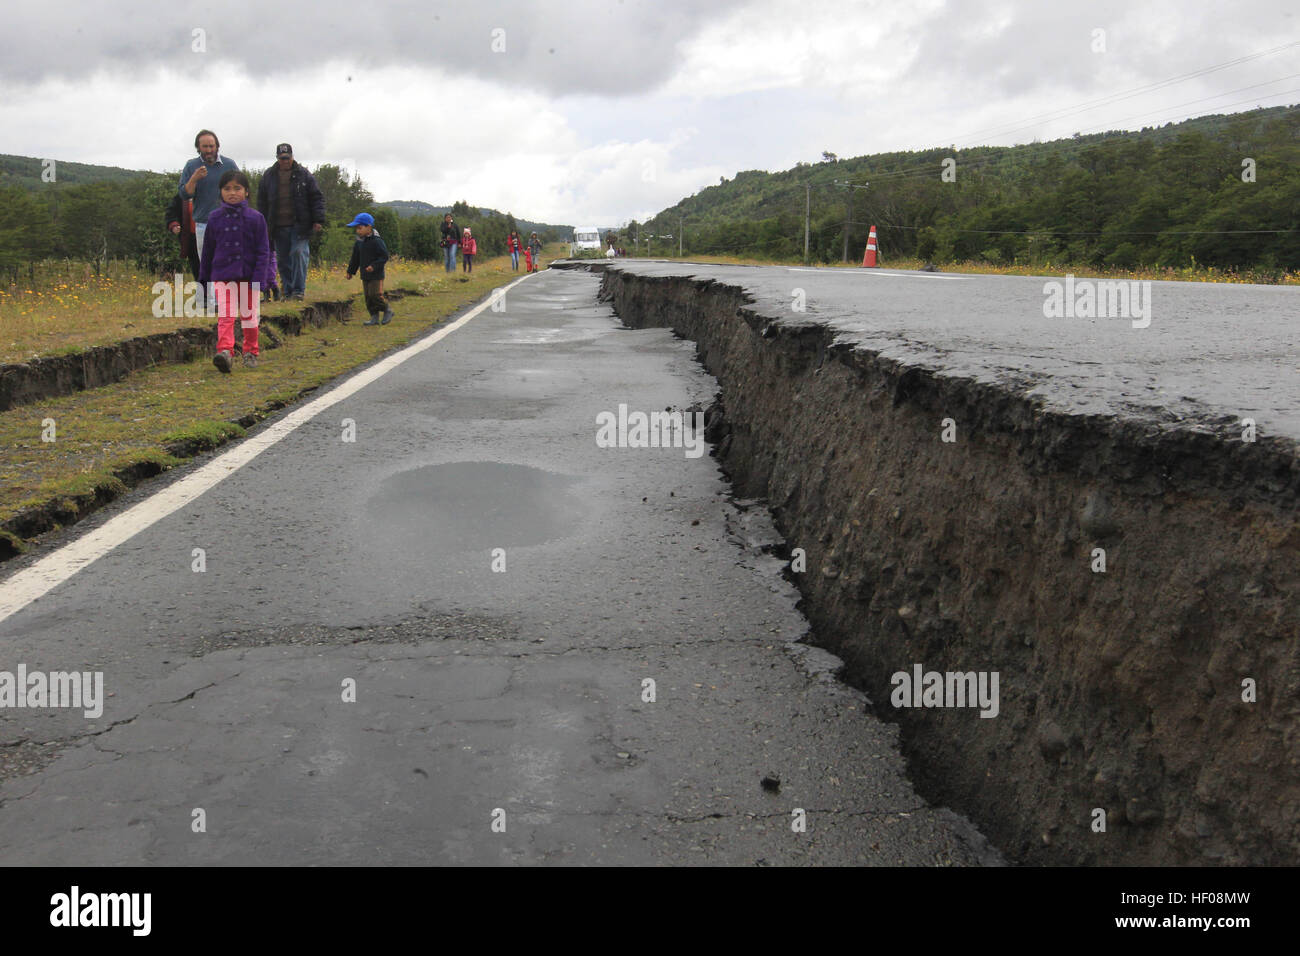 Chiloe province, Chile. 25th December, 2016. Photo taken on Dec. 25, 2016 shows a road damaged by an earthquake - Stock Image